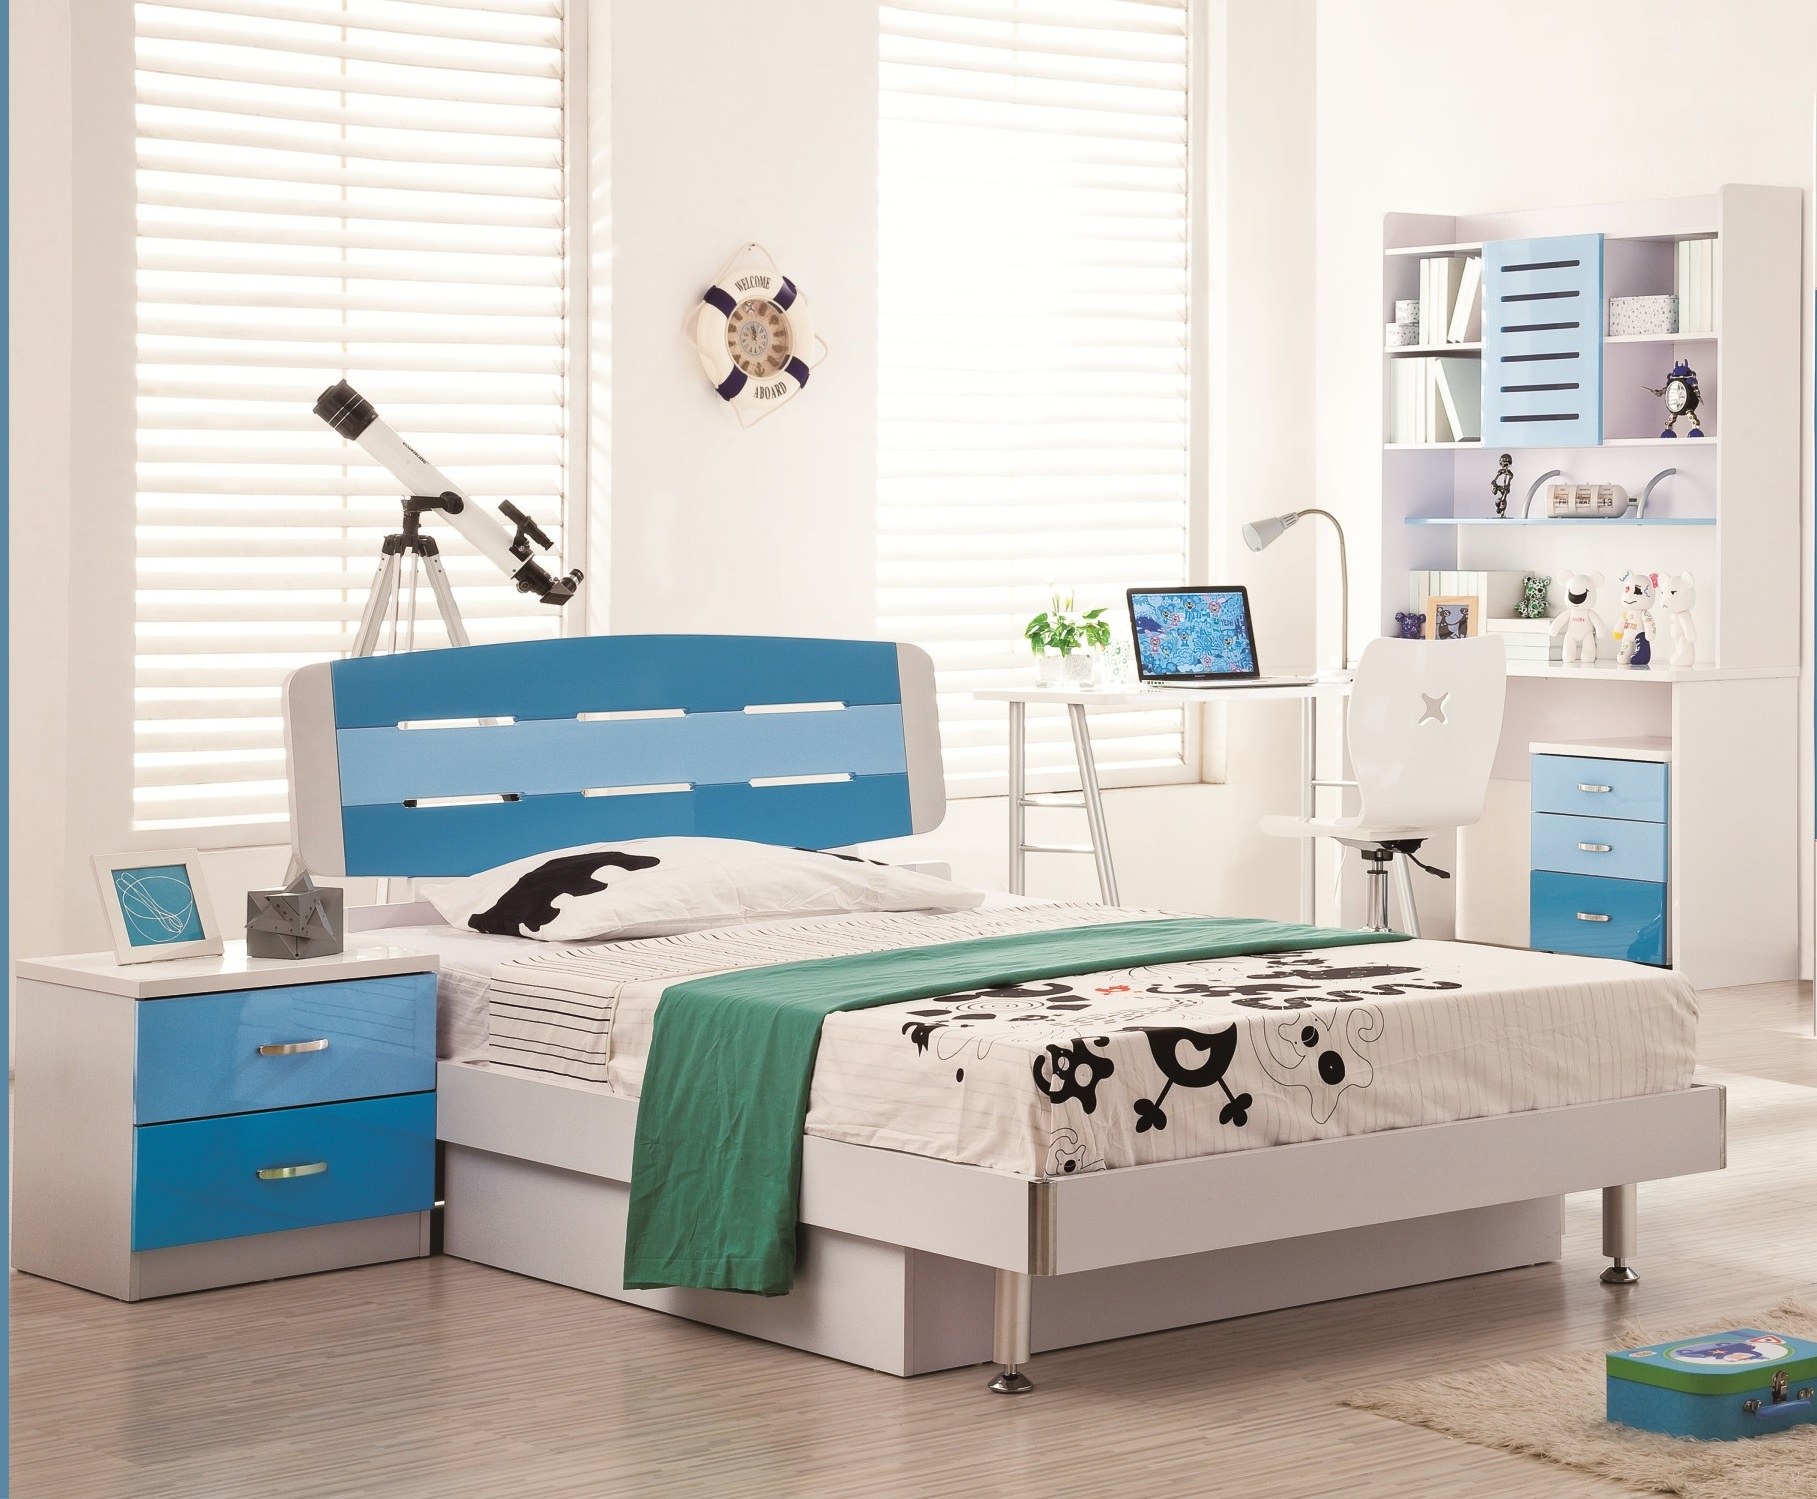 Kids kouch kids furniture online kids bedroom furniture for Gourmet furniture bed design